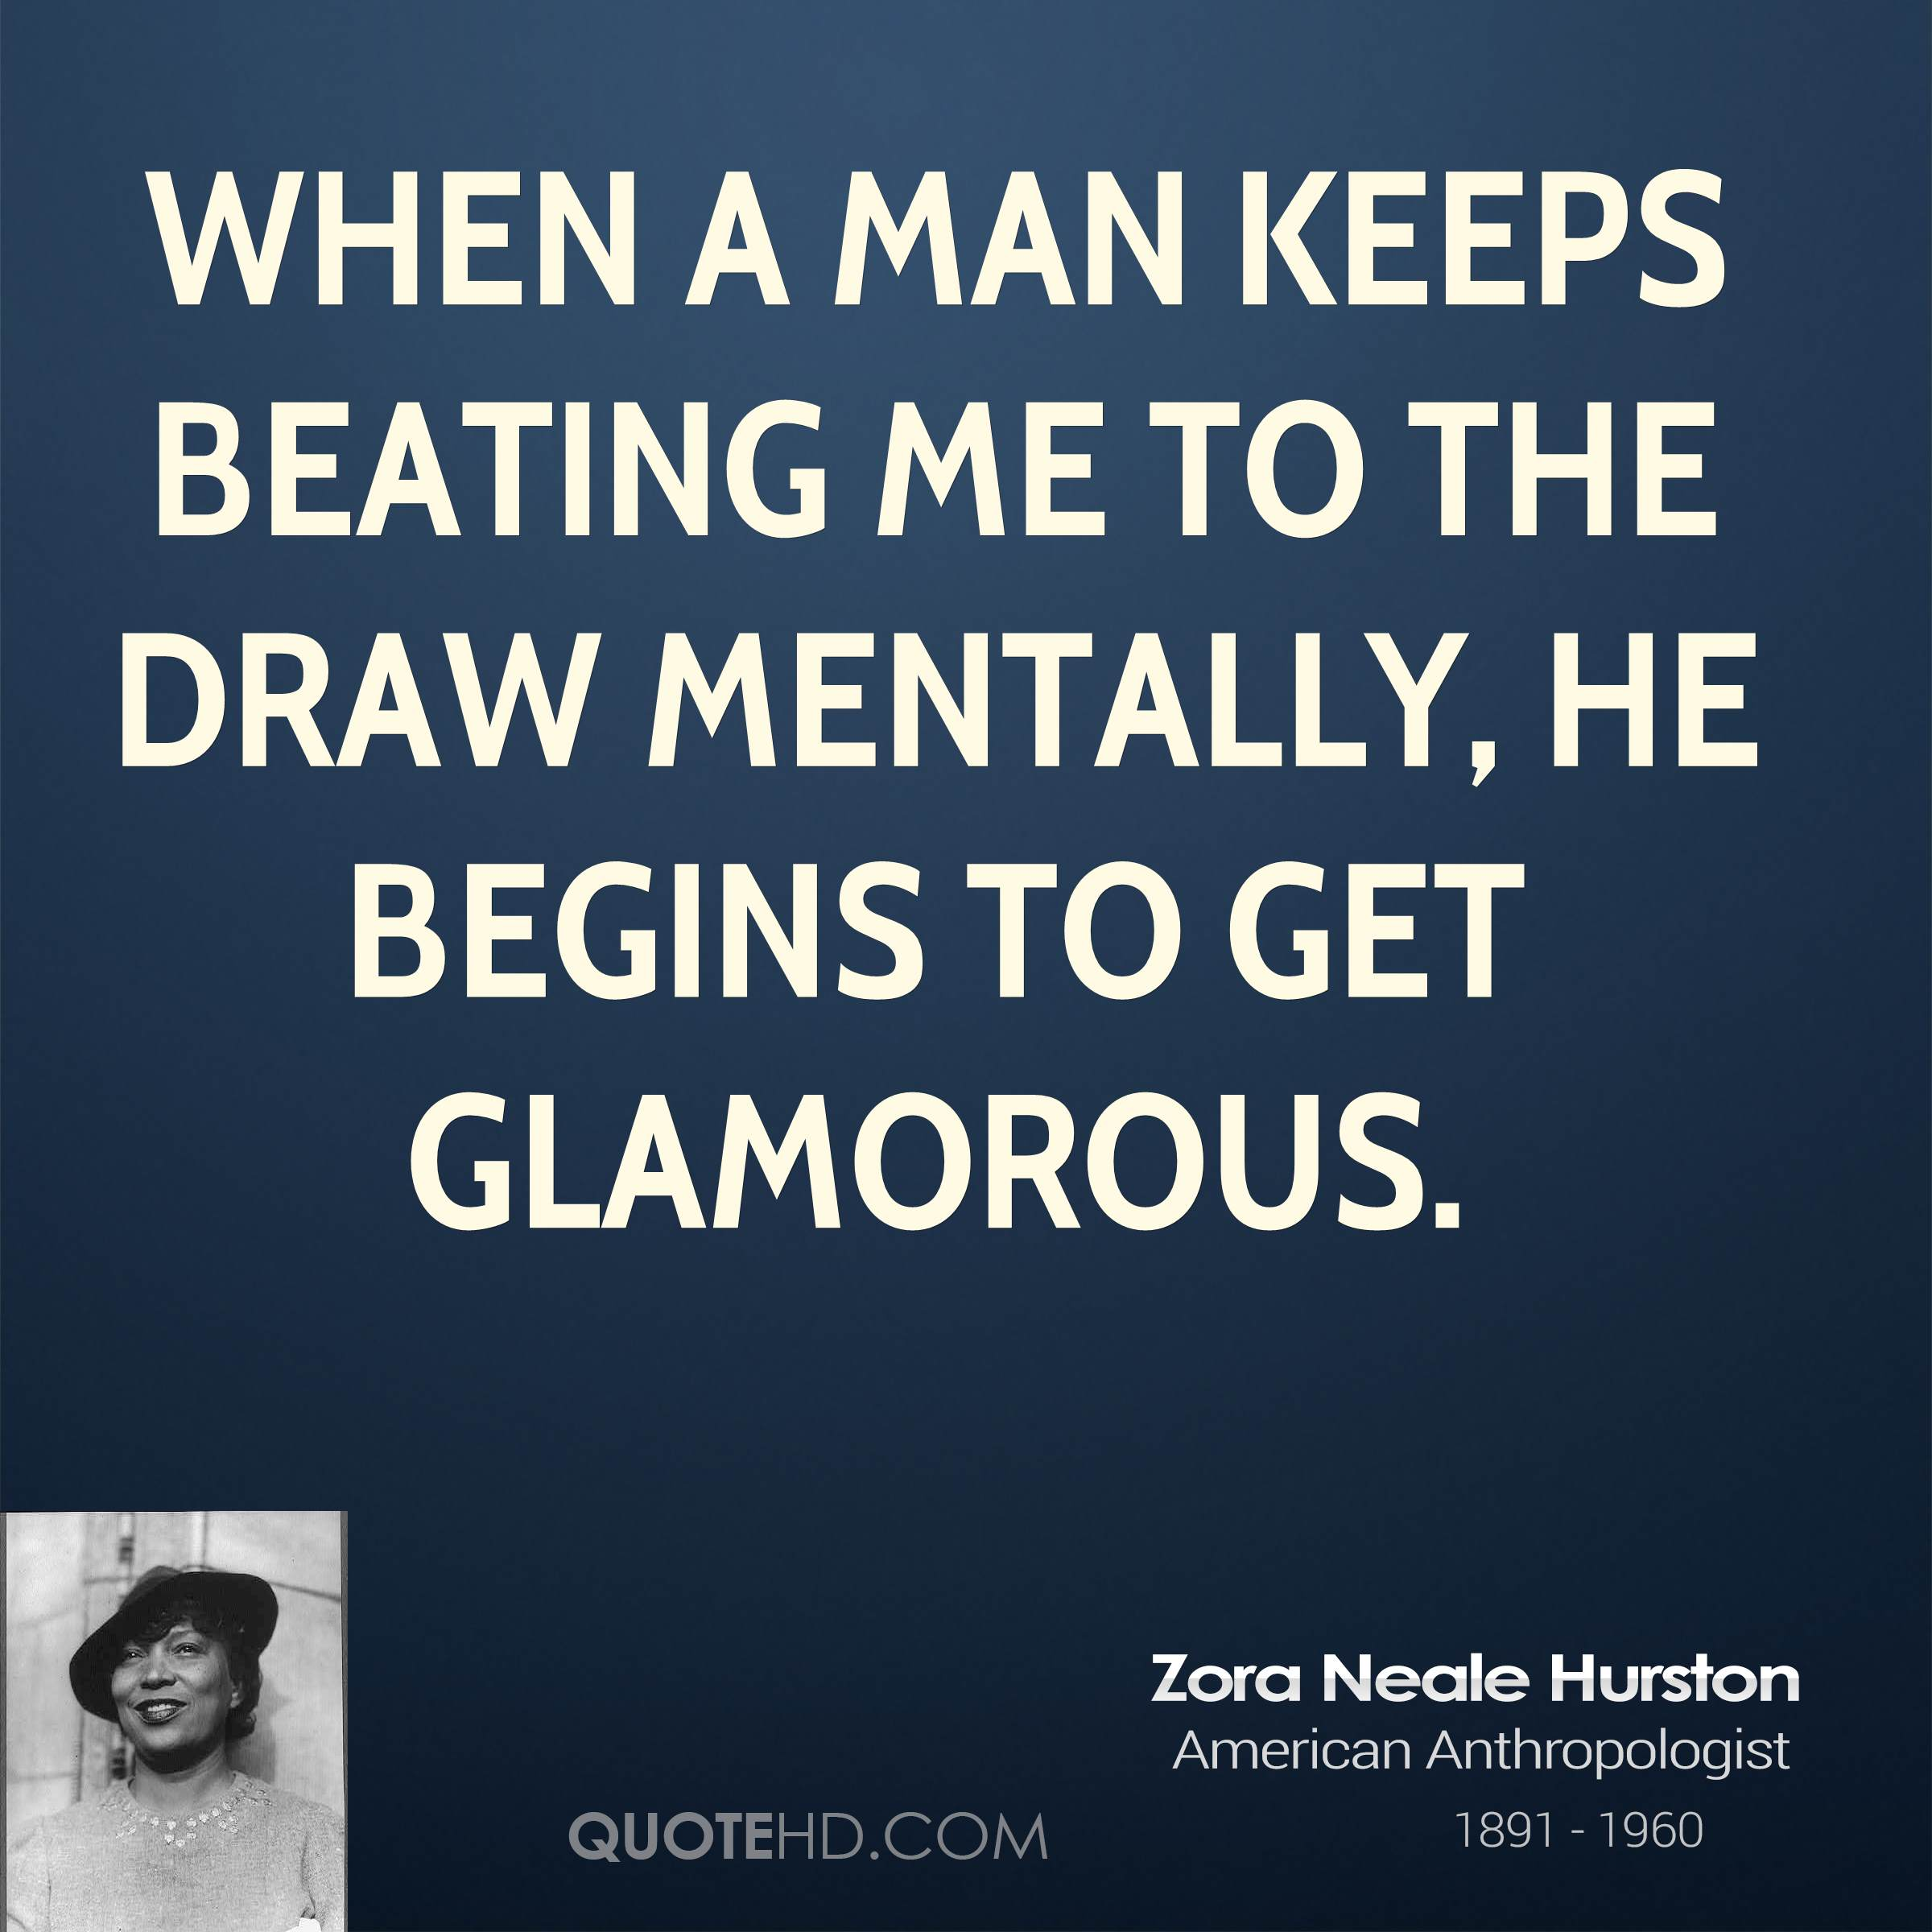 When a man keeps beating me to the draw mentally, he begins to get glamorous.